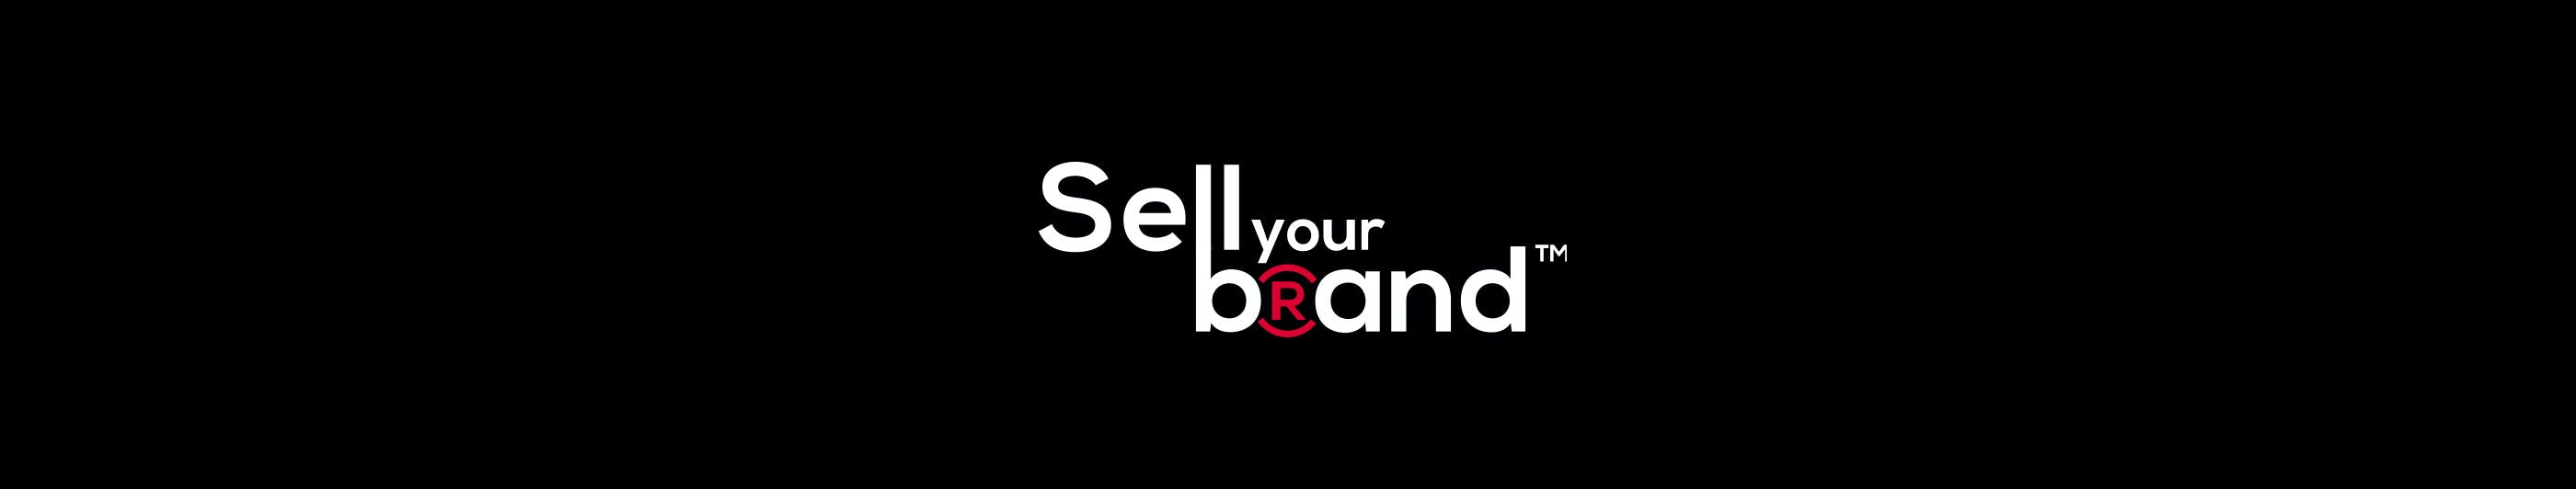 Sell Your Brand Footer